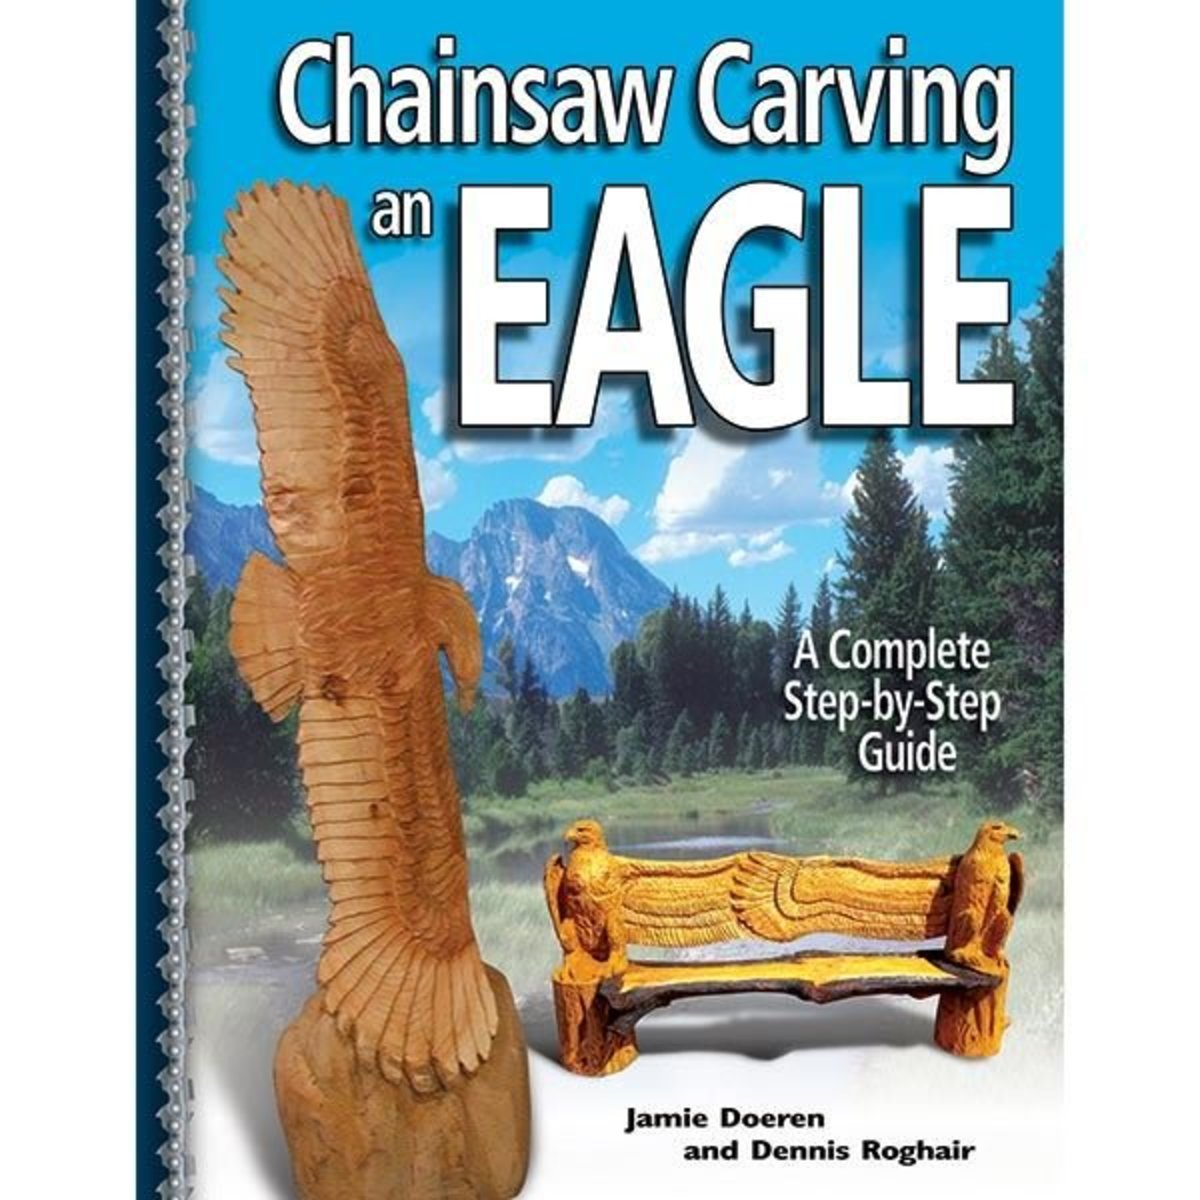 Chainsaw carving an eagle: a complete step by step guide